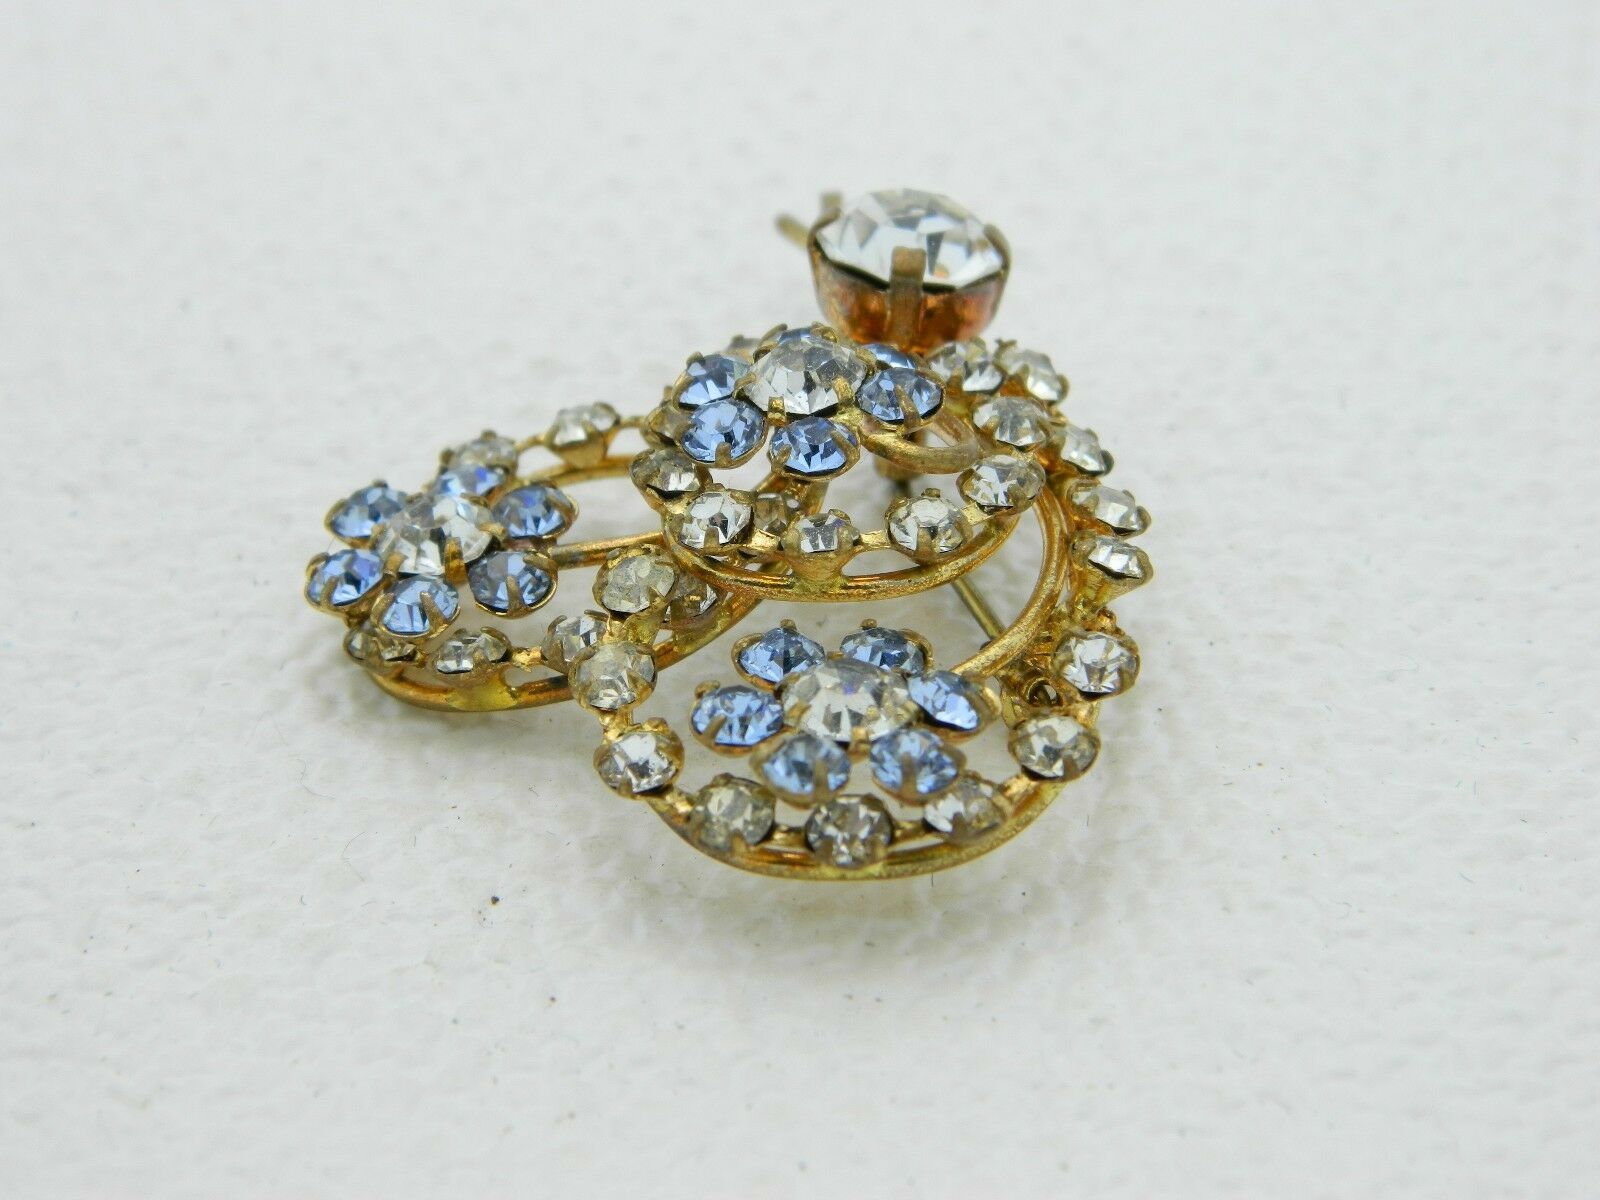 Vintage Gold Tone Blue Clear Rhinestone Heart Flower Pin Brooch image 2